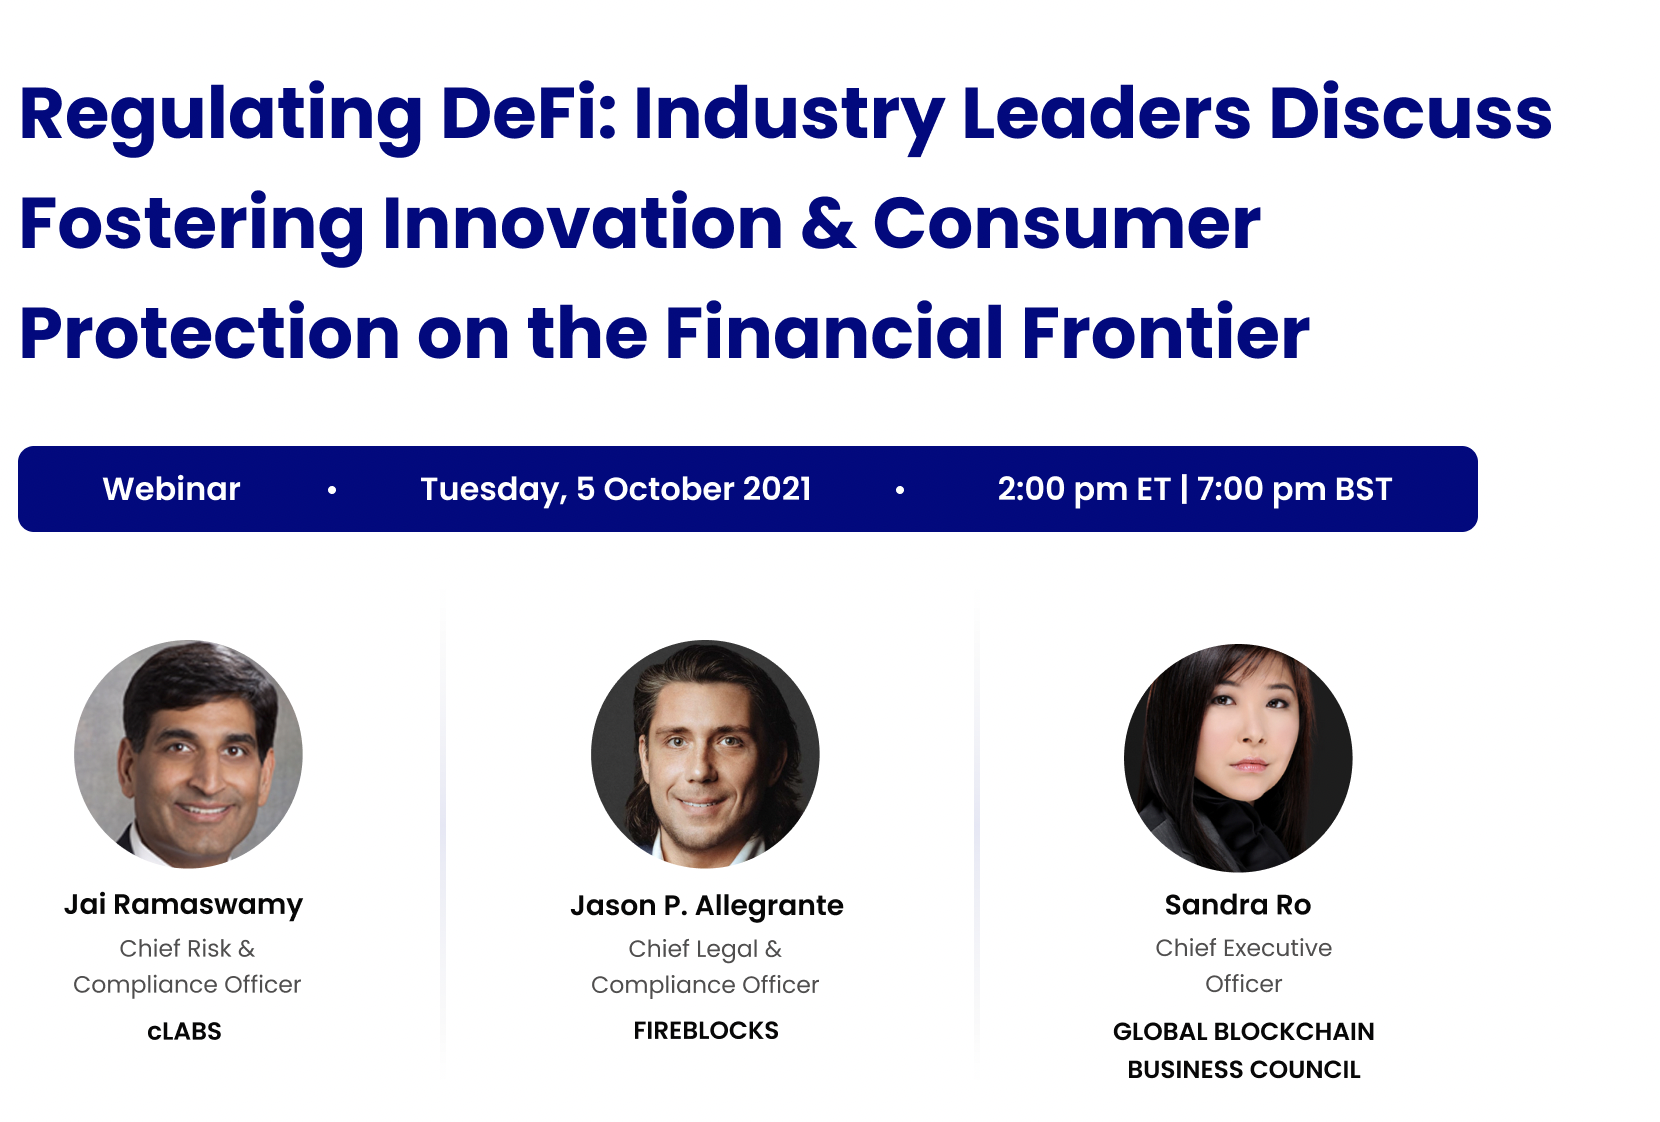 Regulating DeFi - Industry Leaders Discuss Fostering Innovation & Protecting Consumer on the Financial Frontier